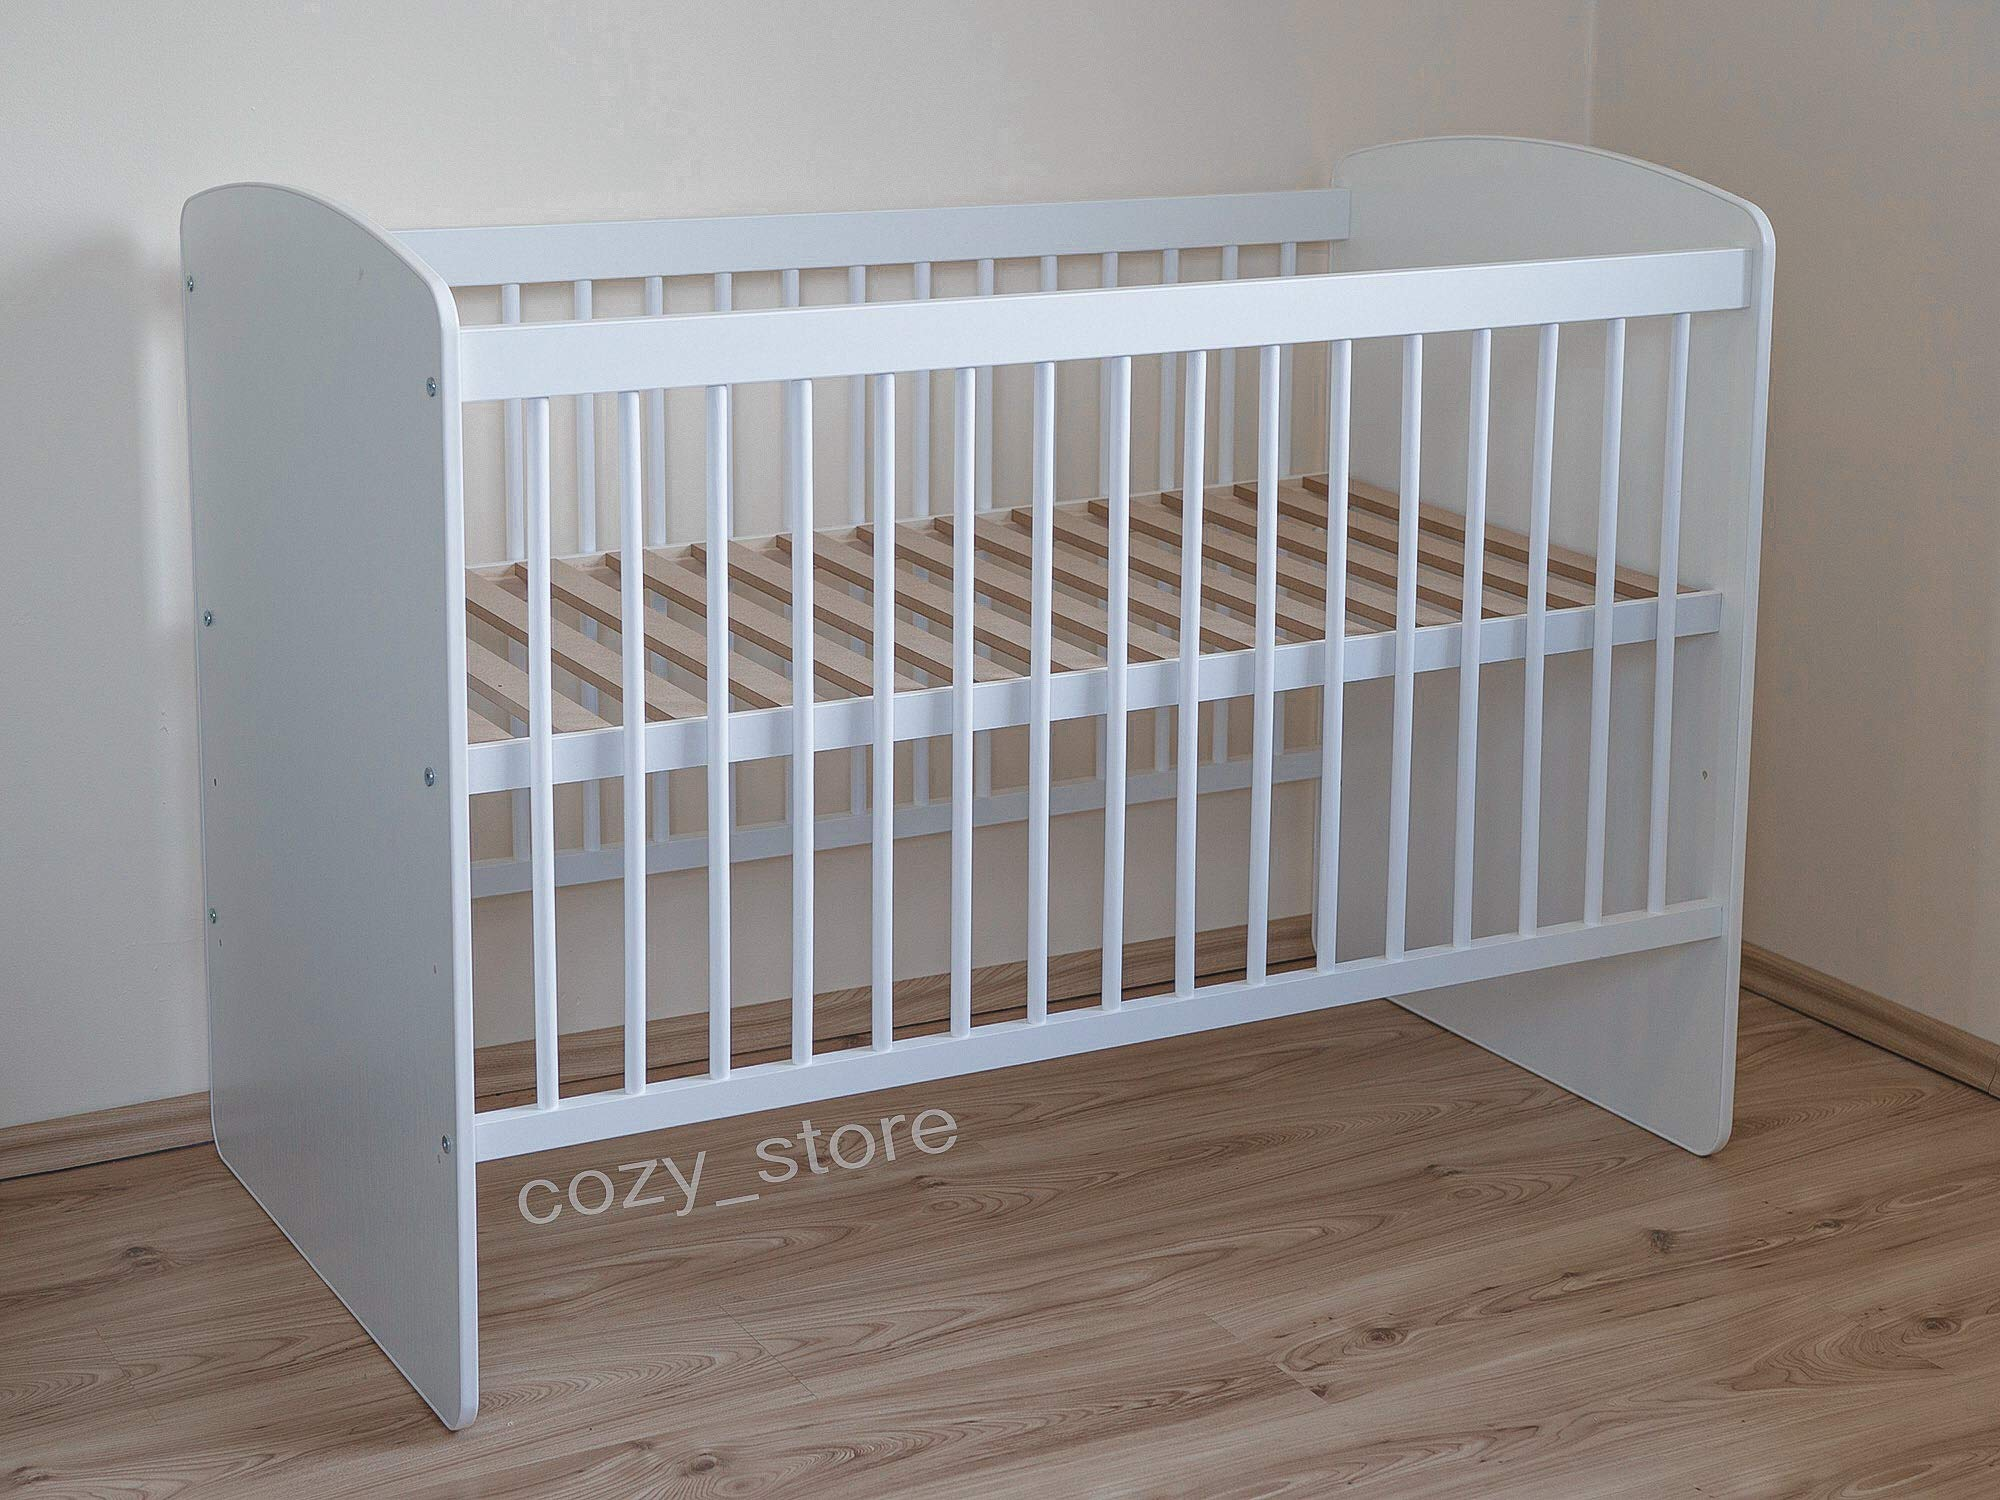 SOCOZY®   White Solid Pine Wood Baby Cot Bed I Free Healthy Coconut&BUCKWHEAT Mattress I Bed for Baby   3 Mattress Positions   ECO Paint   Minimalistic   120x60 SOCOZY ✔ HEALTH your growing child is the most important for us - The bed is made of ecological board and pine wood and the cot is covered with non-toxic lacquers ✔ ENJOY the view of the child playing in the cot and have a moment to yourself - as mom you deserve it more than anyone else ✔ GIVE YOUR CHILD a peaceful and helathy sleep - Coconut mat provides a flat, hard but also elastic support for the body while sleeping, perfect air circulation and humidity control. The mat is ecological. 4